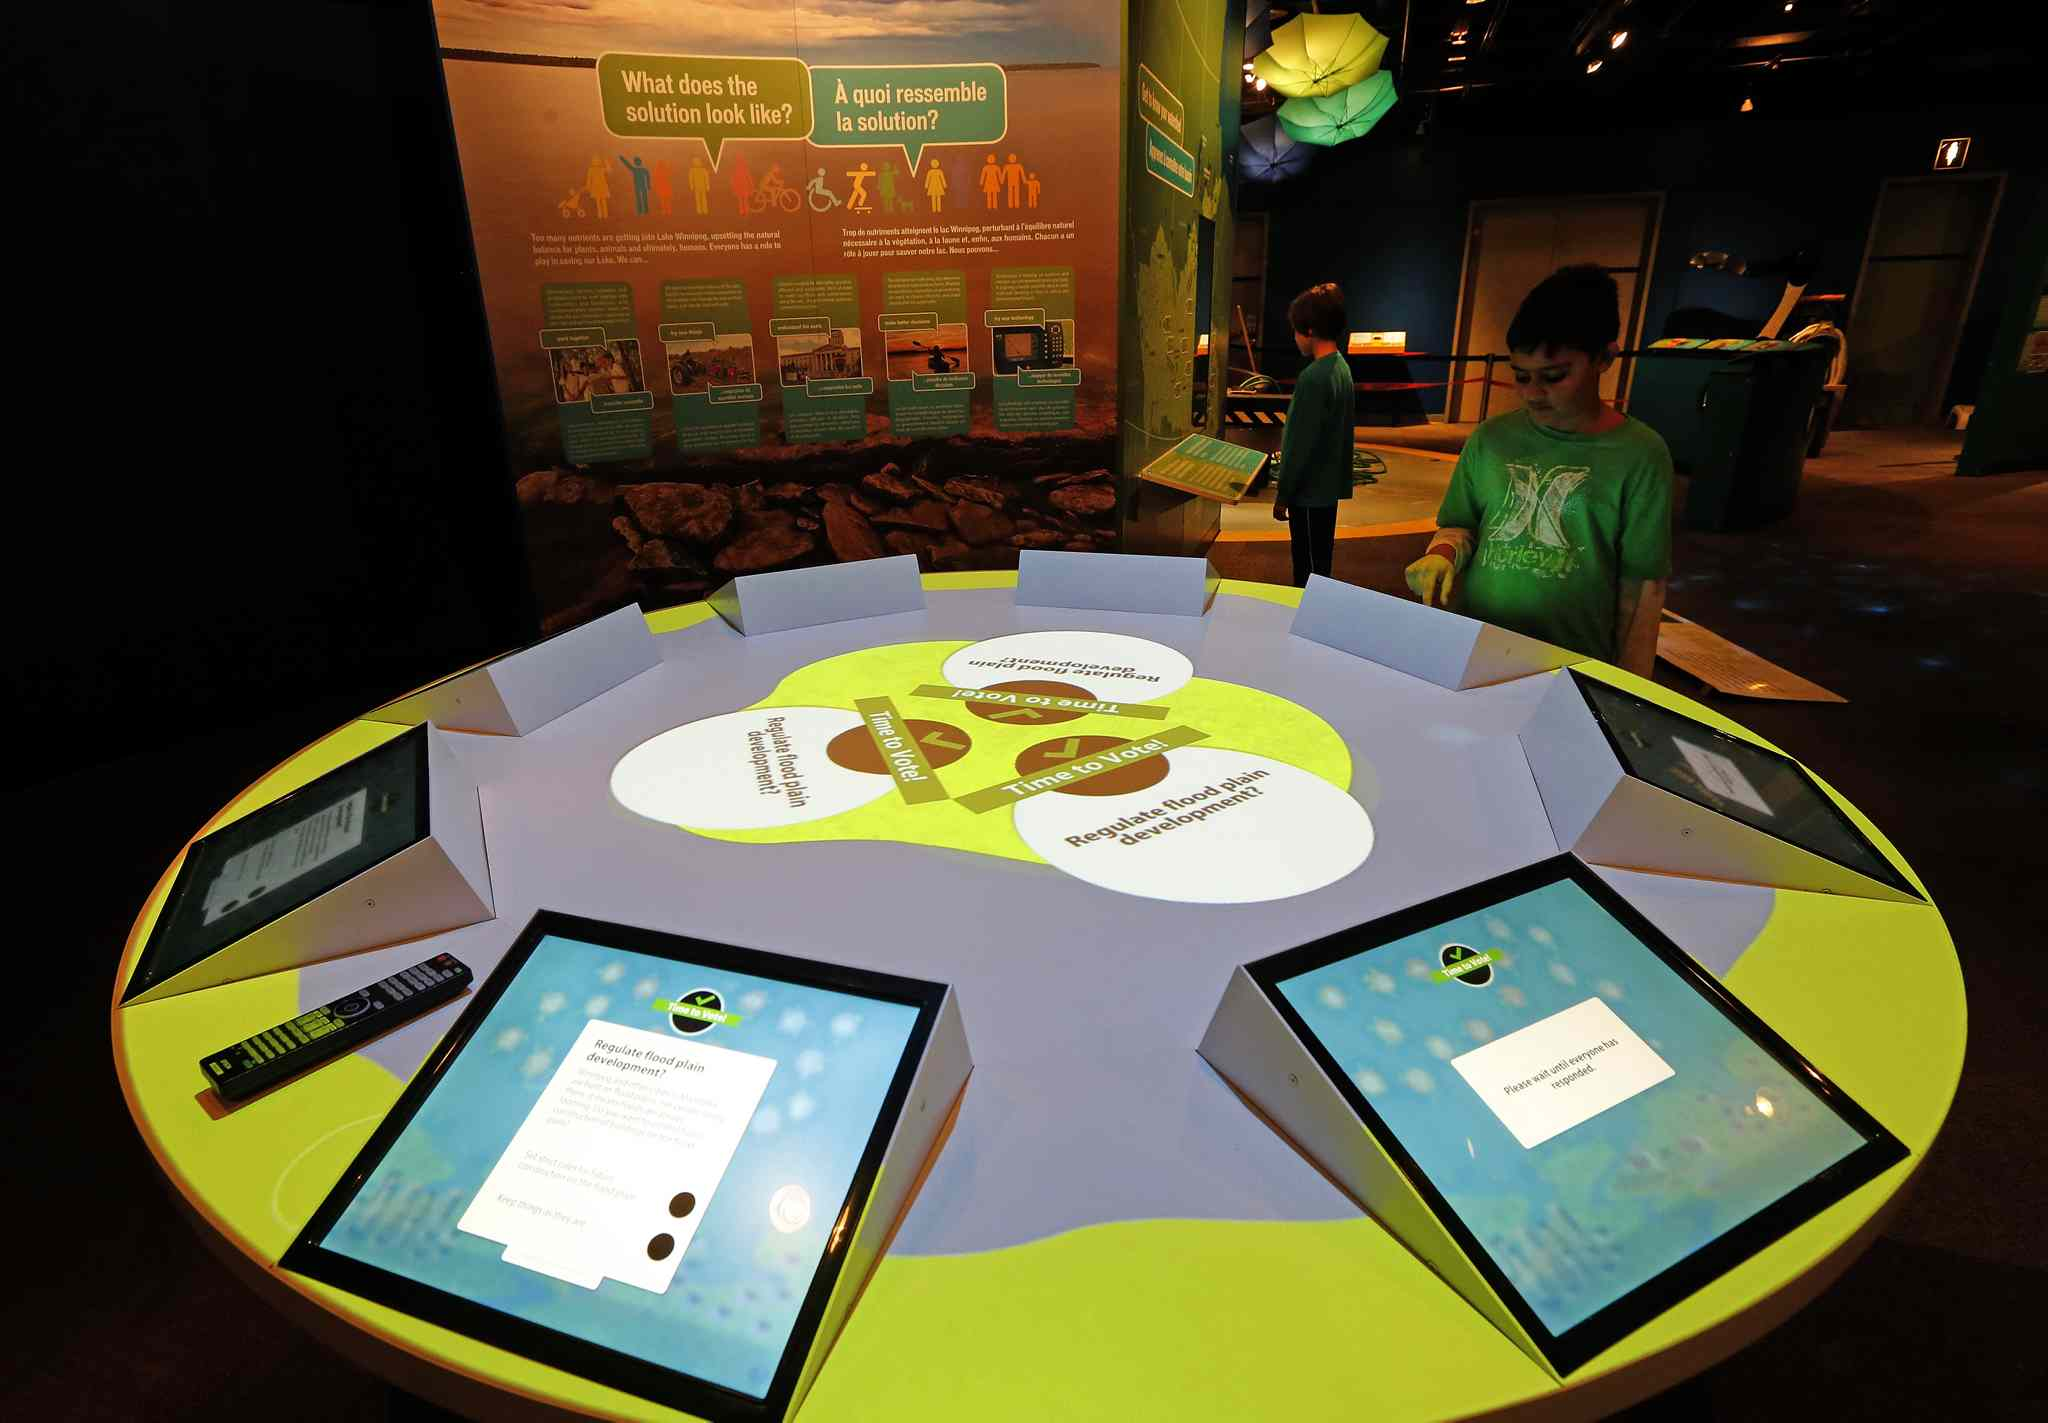 The aim of the exhibit Lake Winnipeg: Shared Solutions is to educate  the public about the threatened body of water.